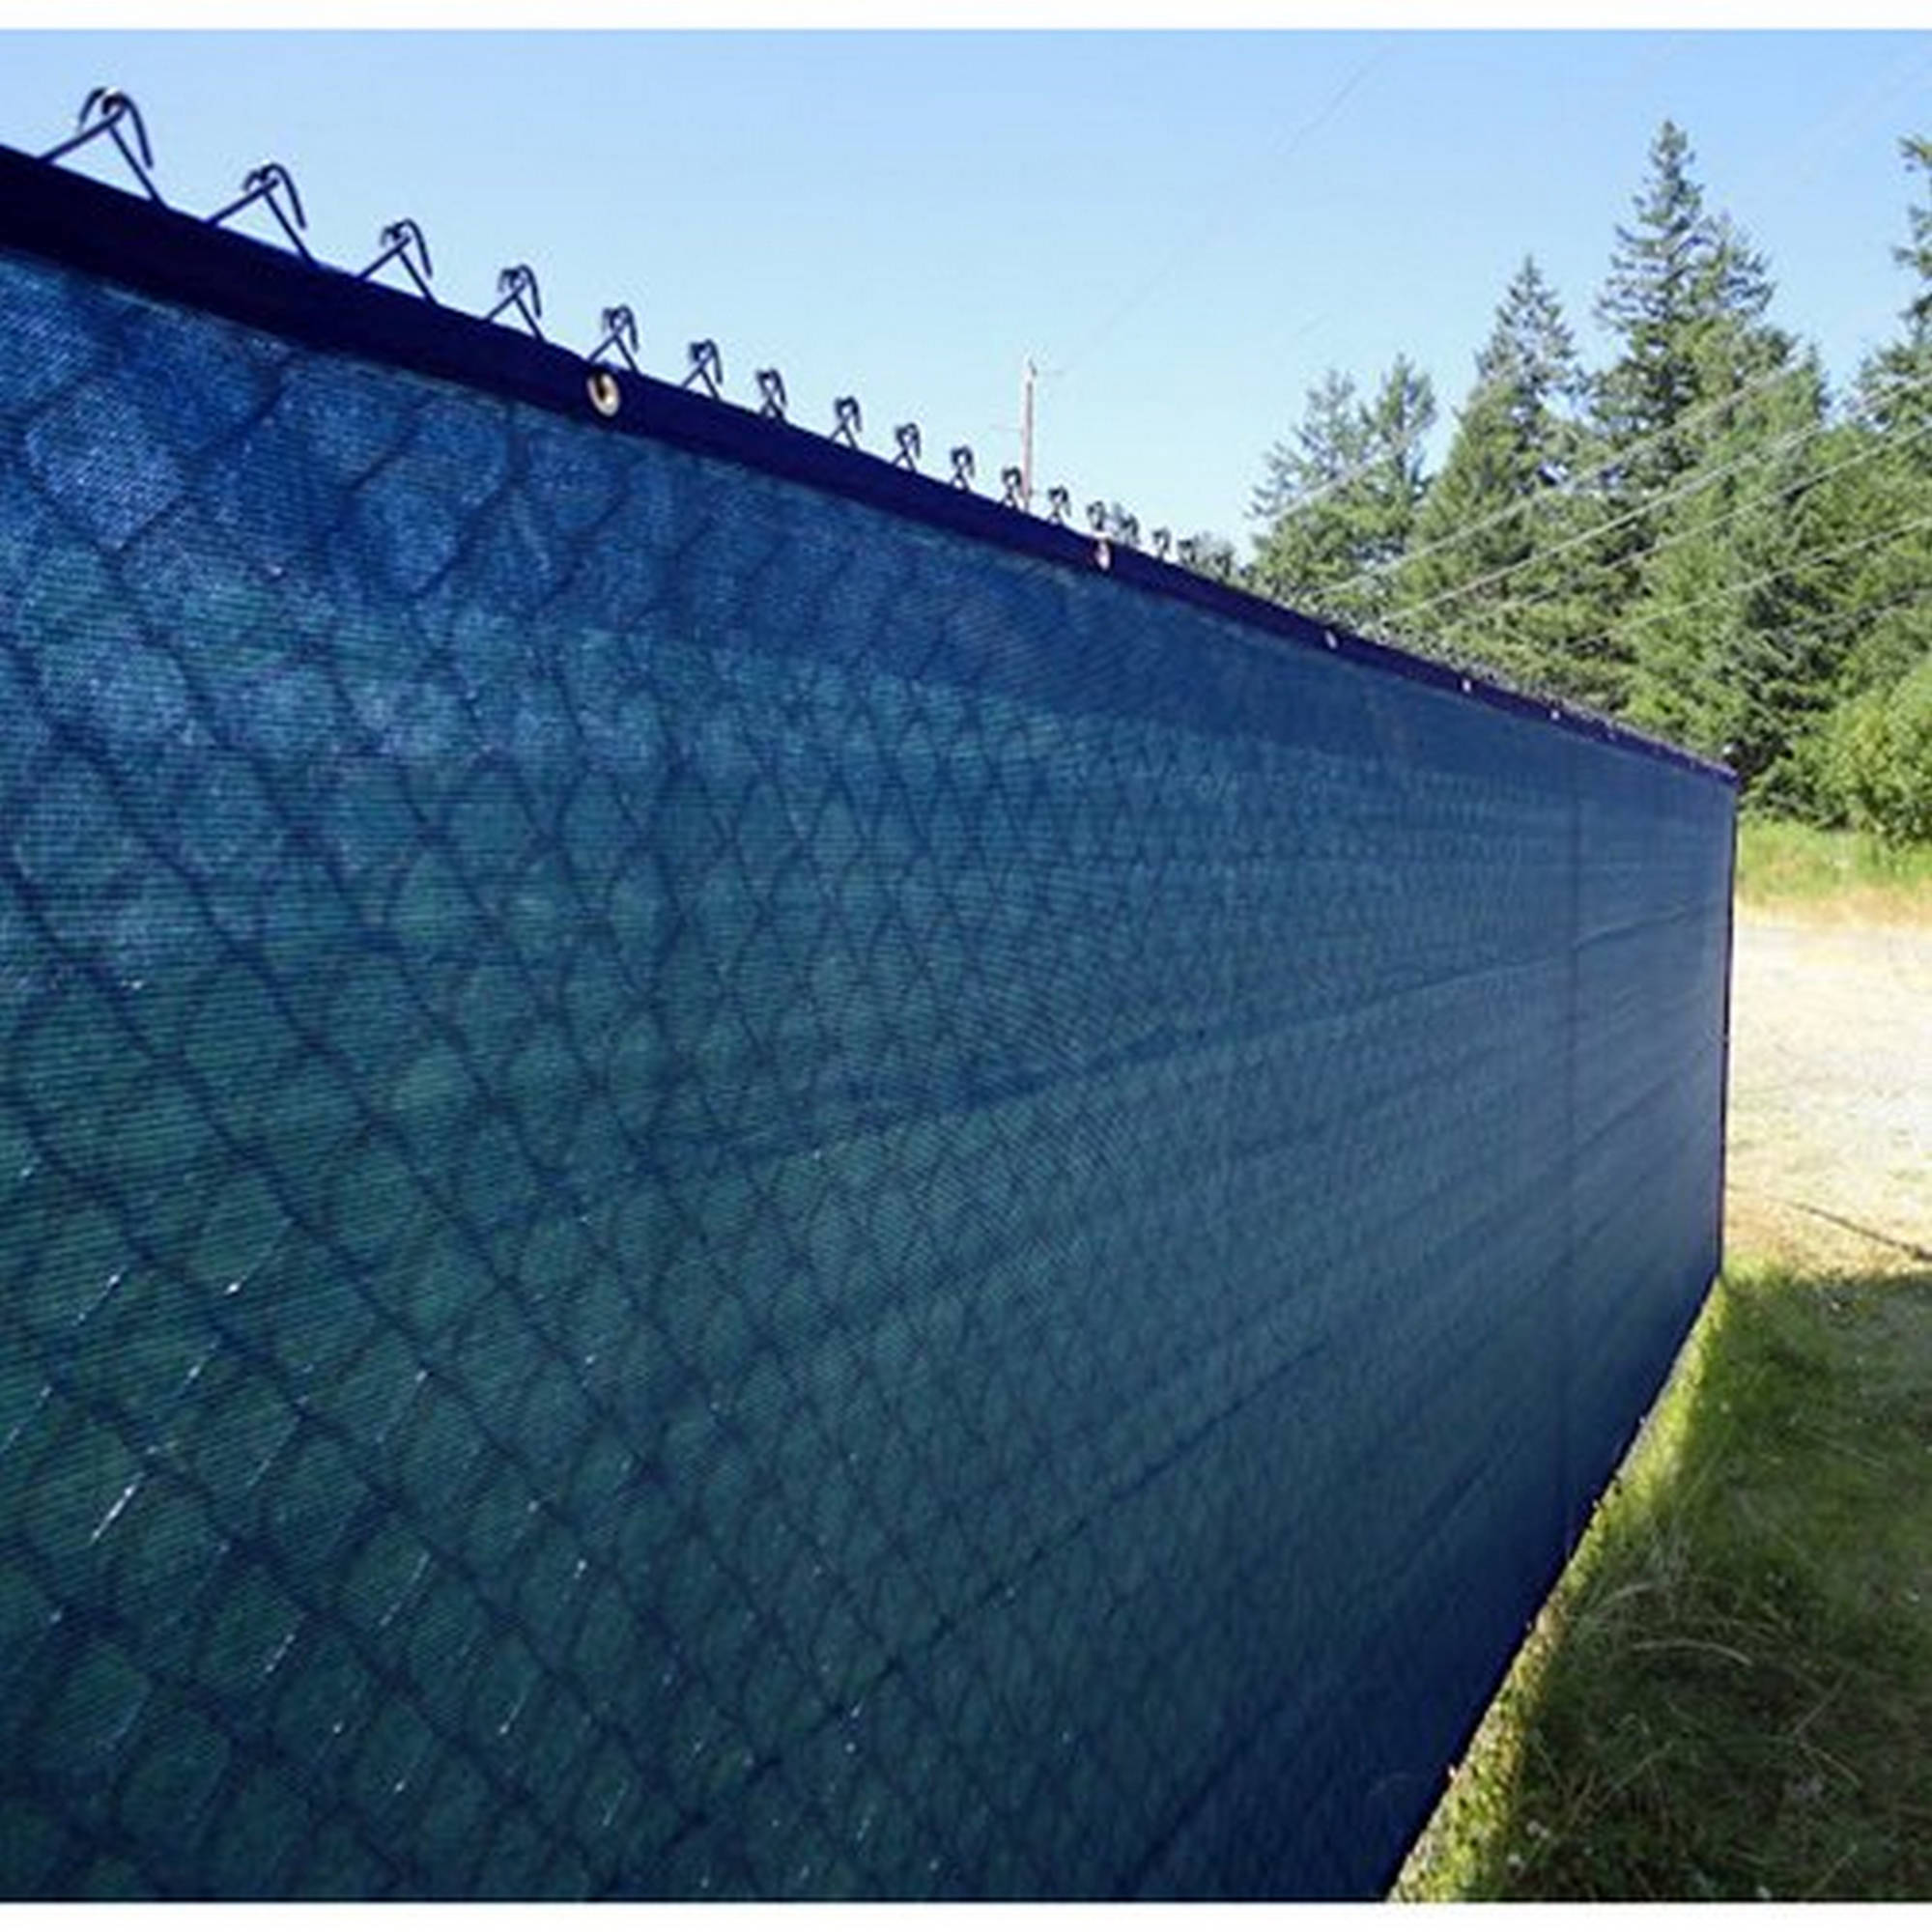 Aleko Privacy Mesh Fabric Screen Fence with Grommets 6 x 25 Feet Blue by ALEKO